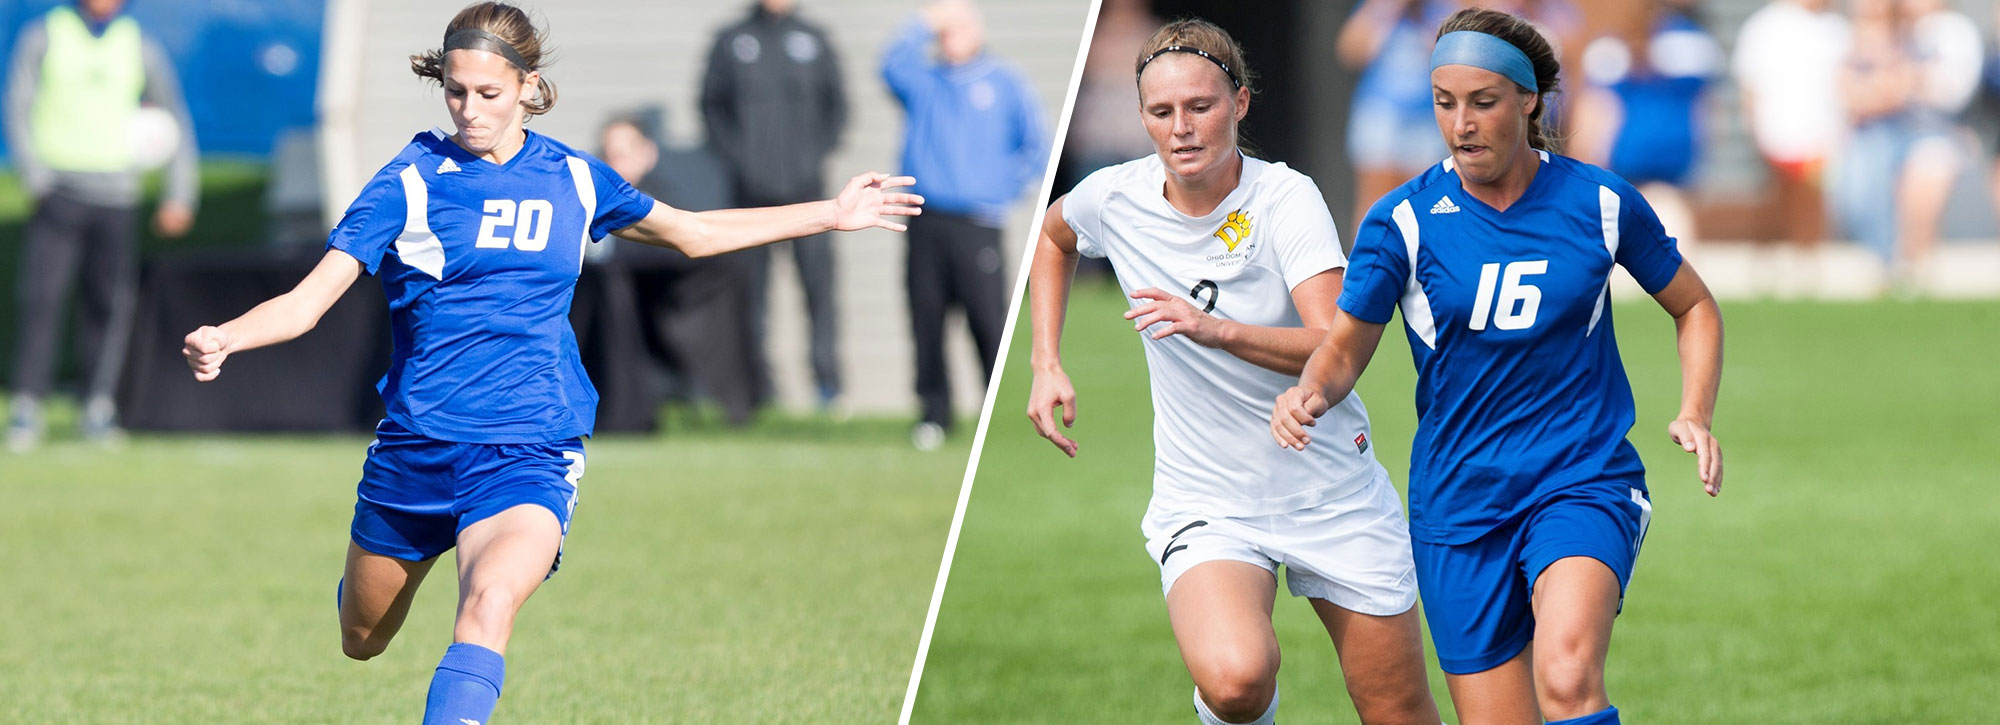 GVSU's Mencotti, Johnson Sweep GLIAC Women's Soccer Week 6 Laurels